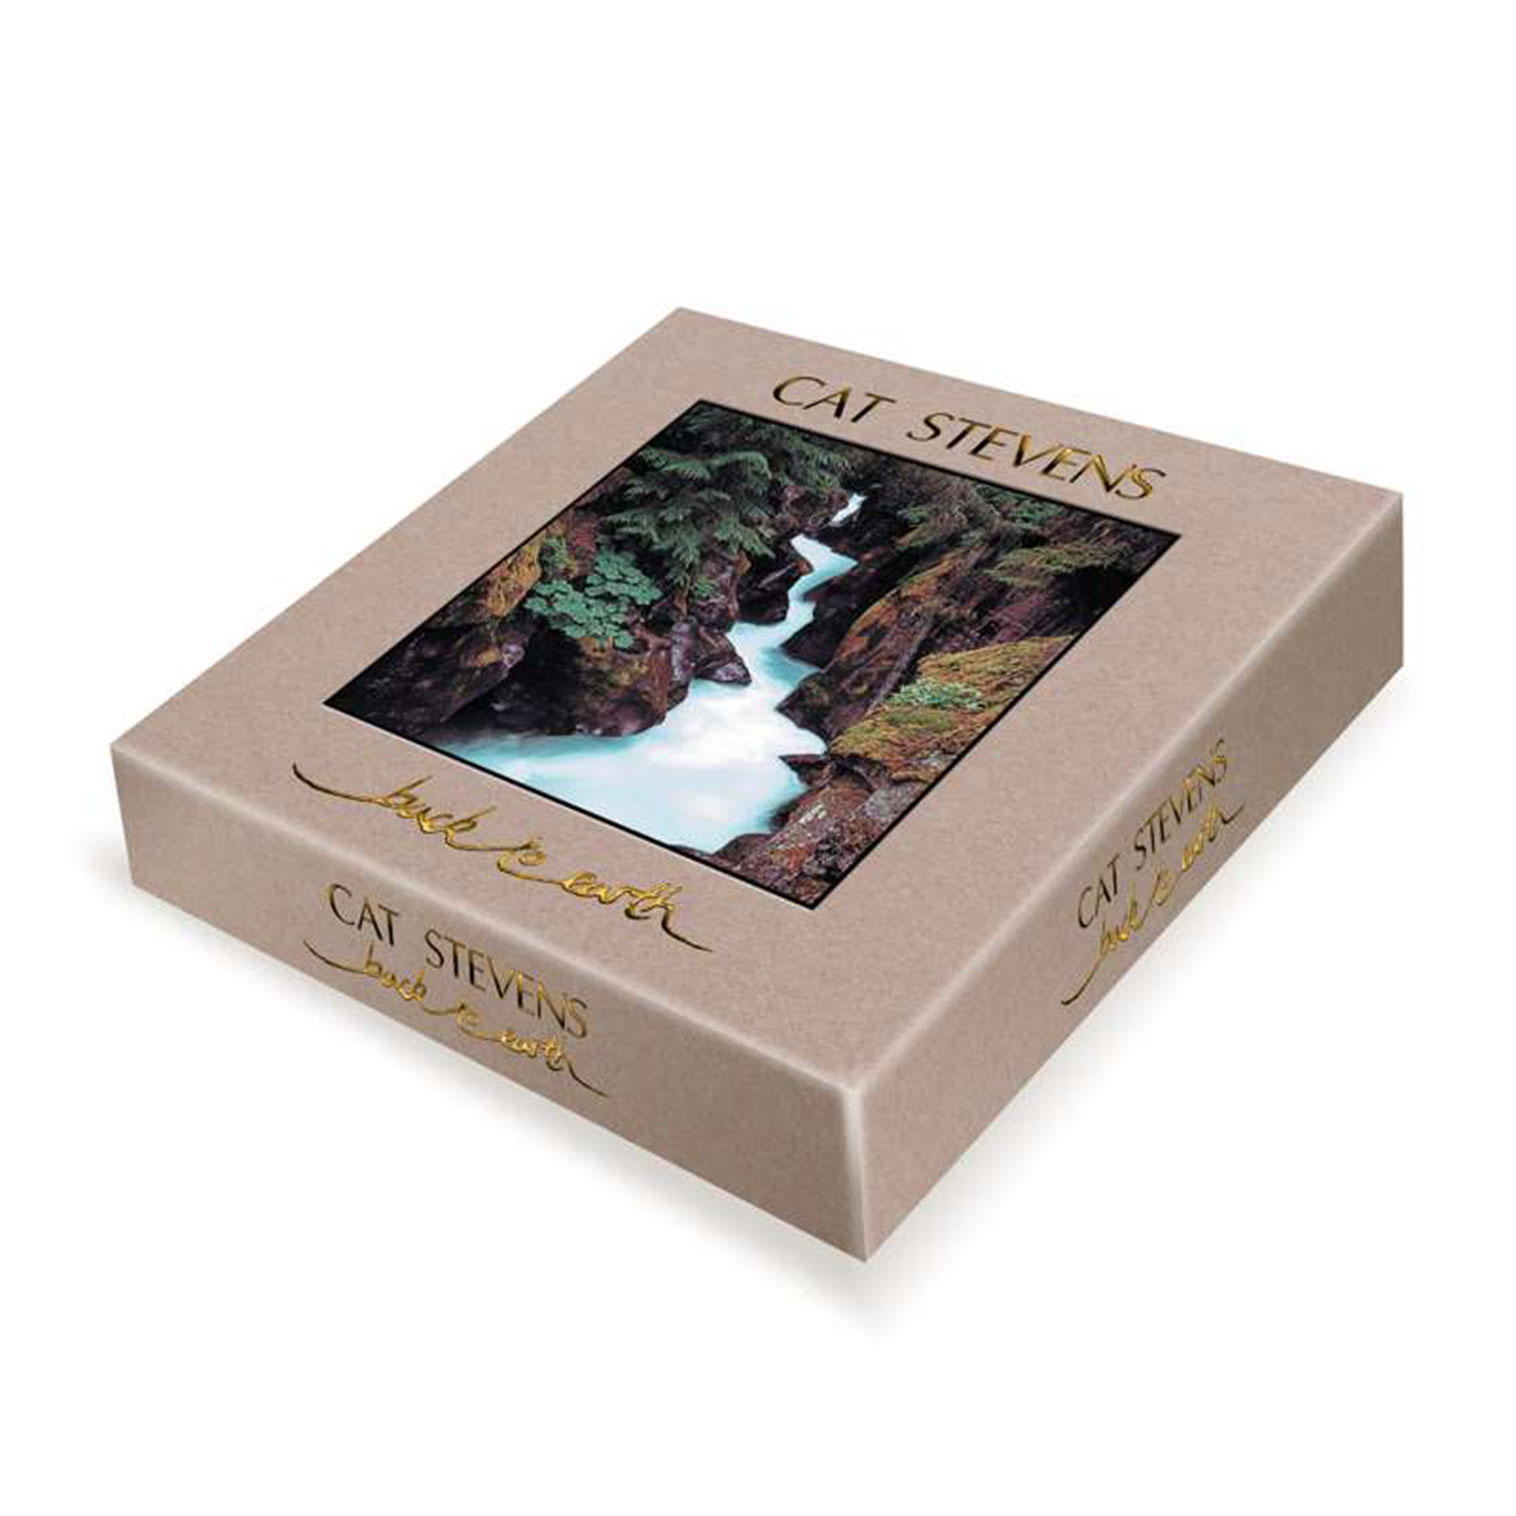 Yusuf/Cat Stevens Back To Earth Numbered Limited Edition 2LP, 5CD, Blu-Ray & Book Box Set